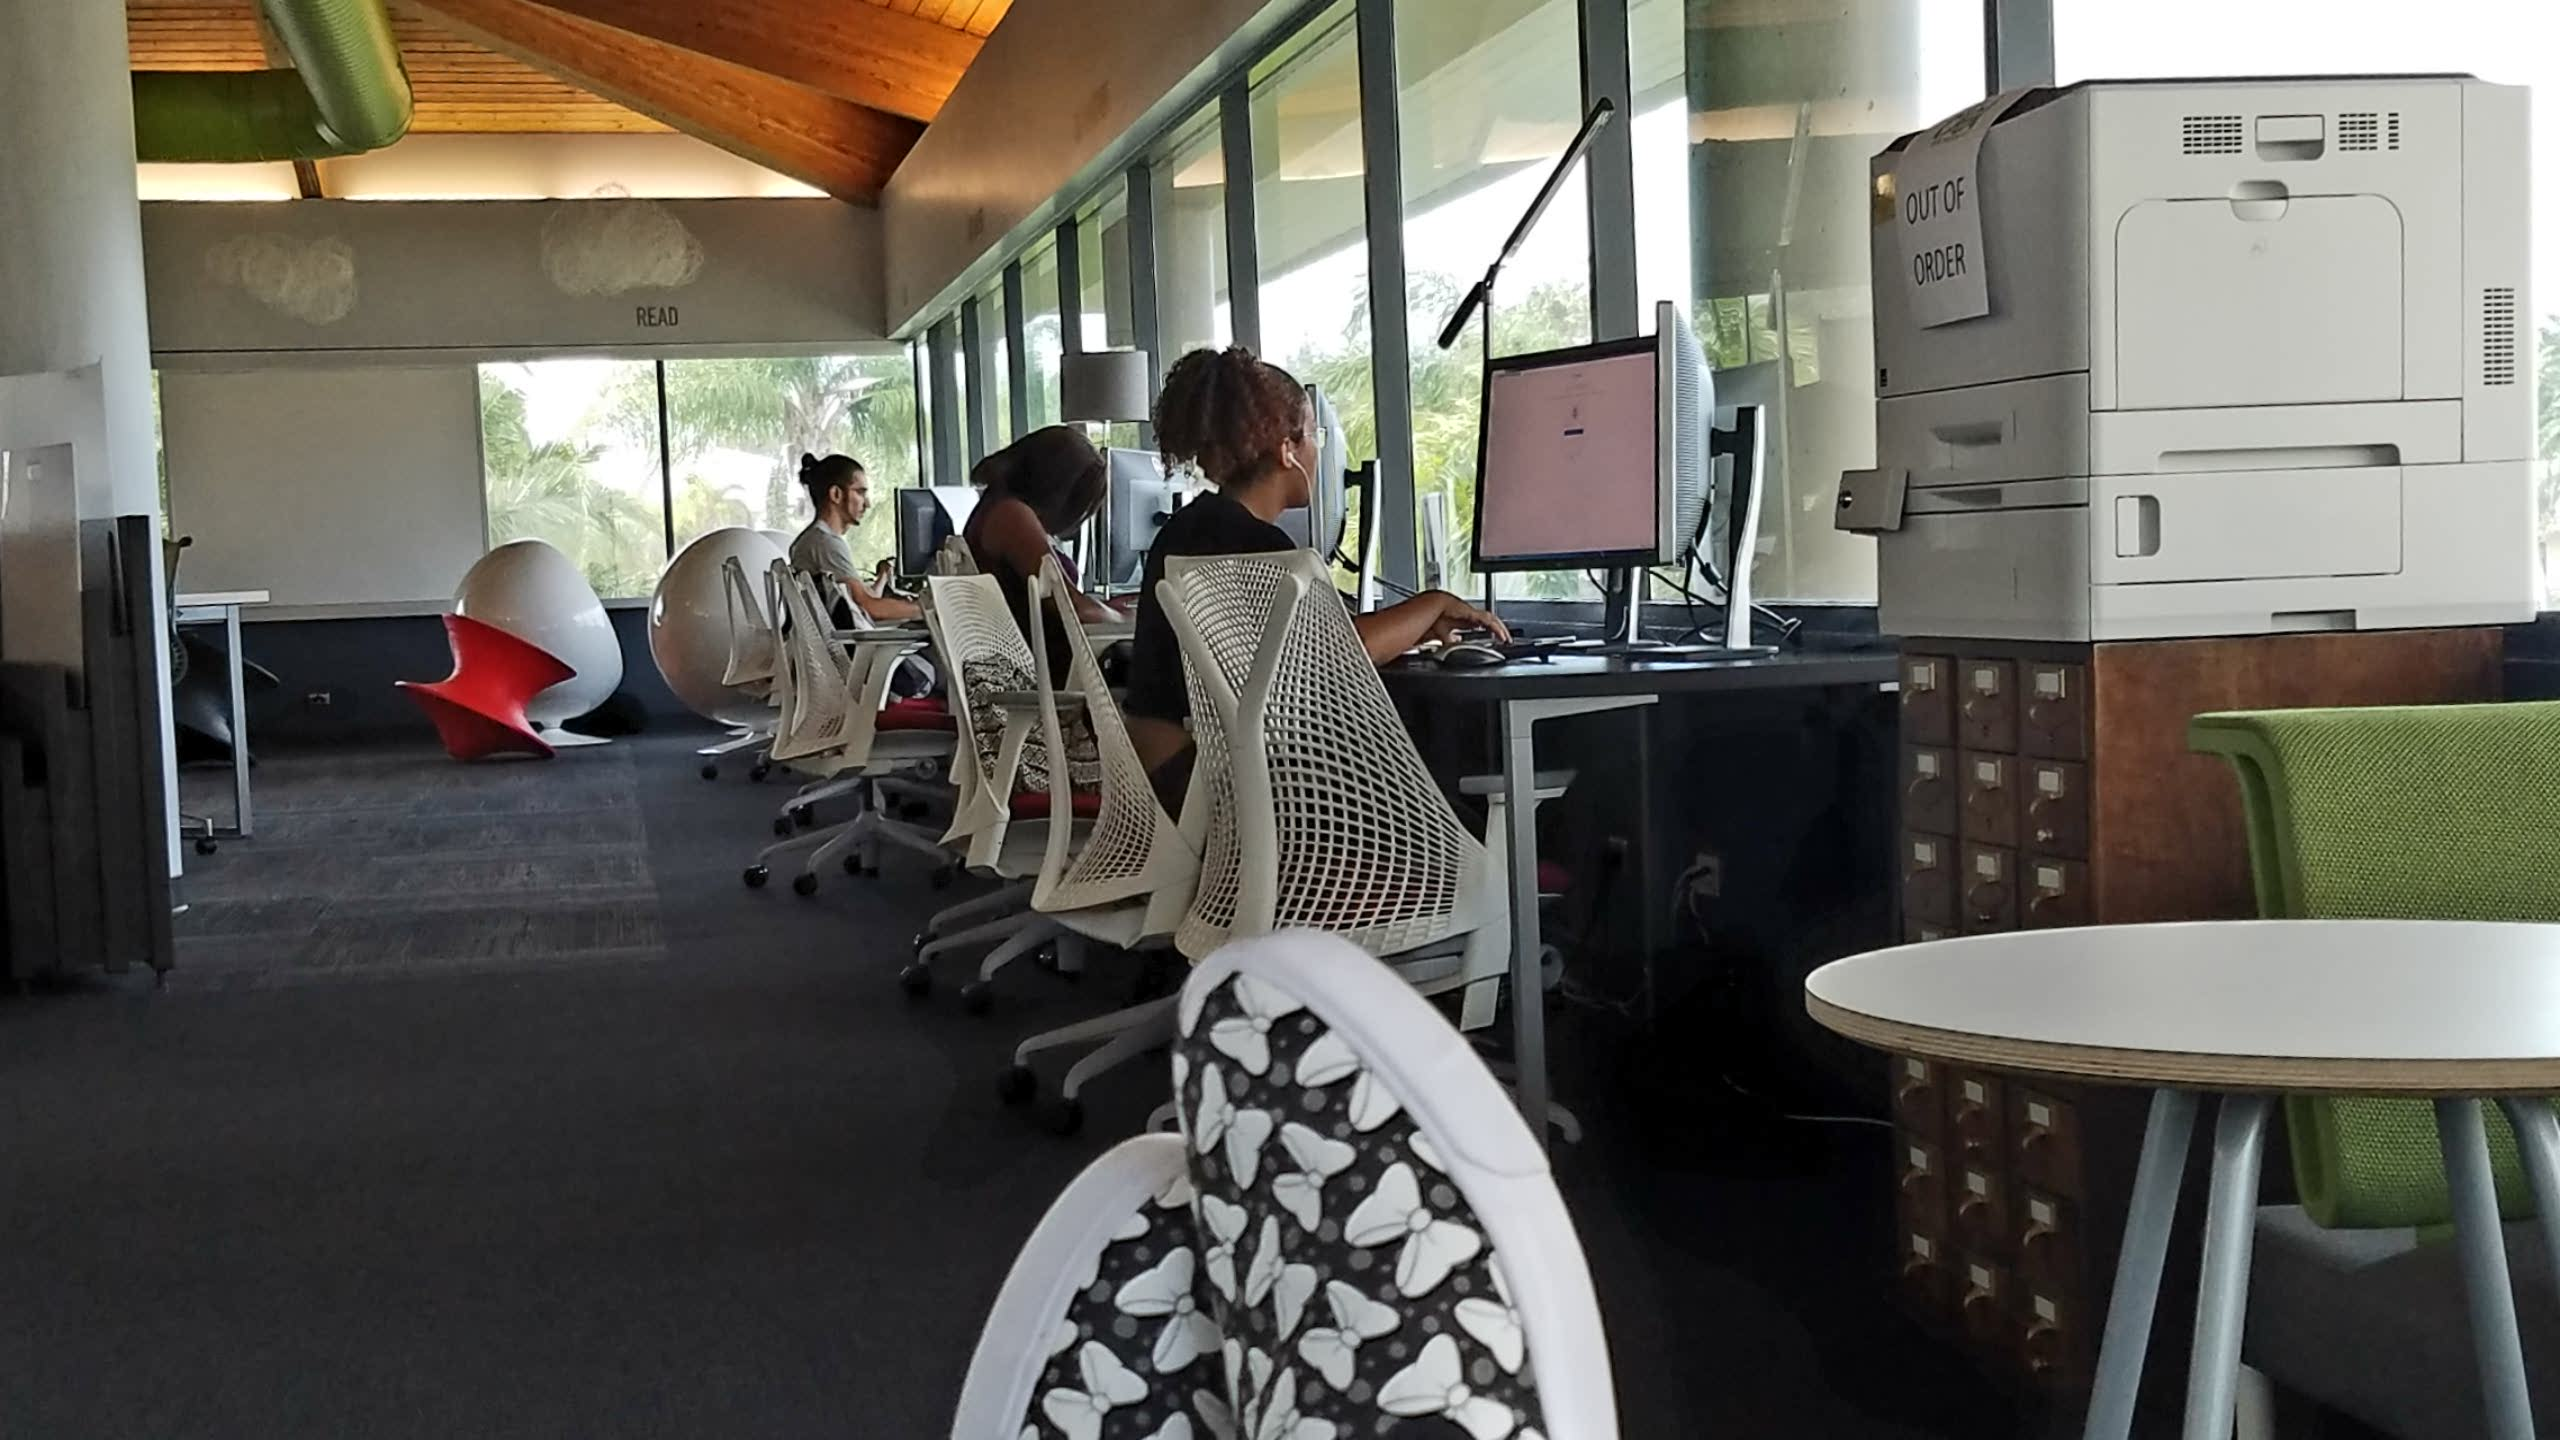 Photo of 7 of the Best Underused Study Spaces